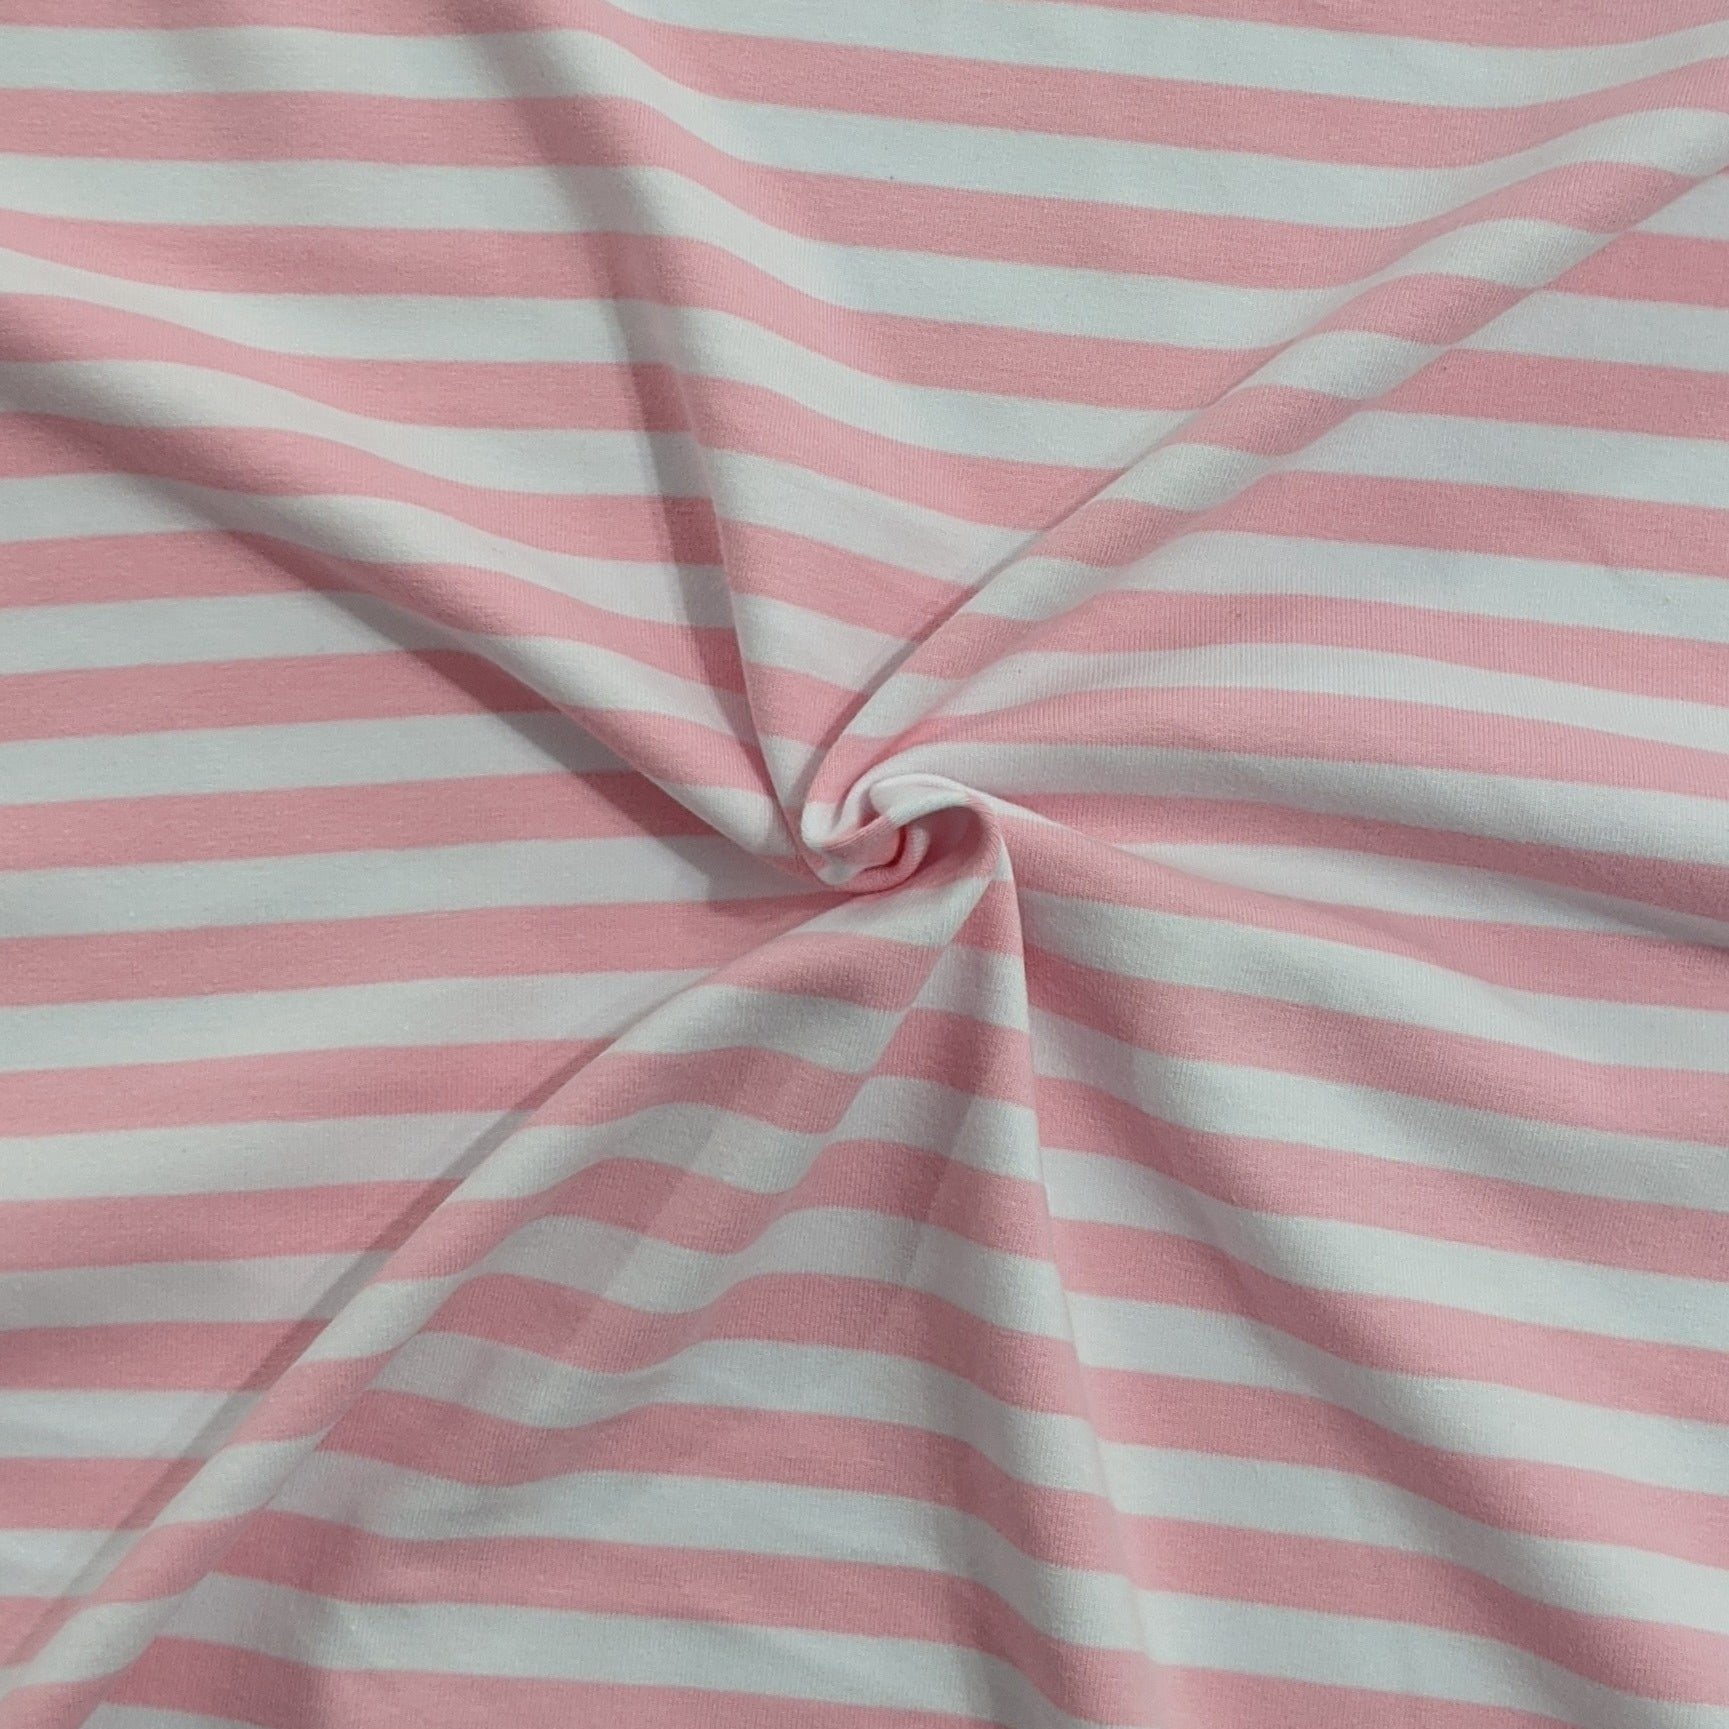 White and Bright Pink Stripes - Jersey Knit